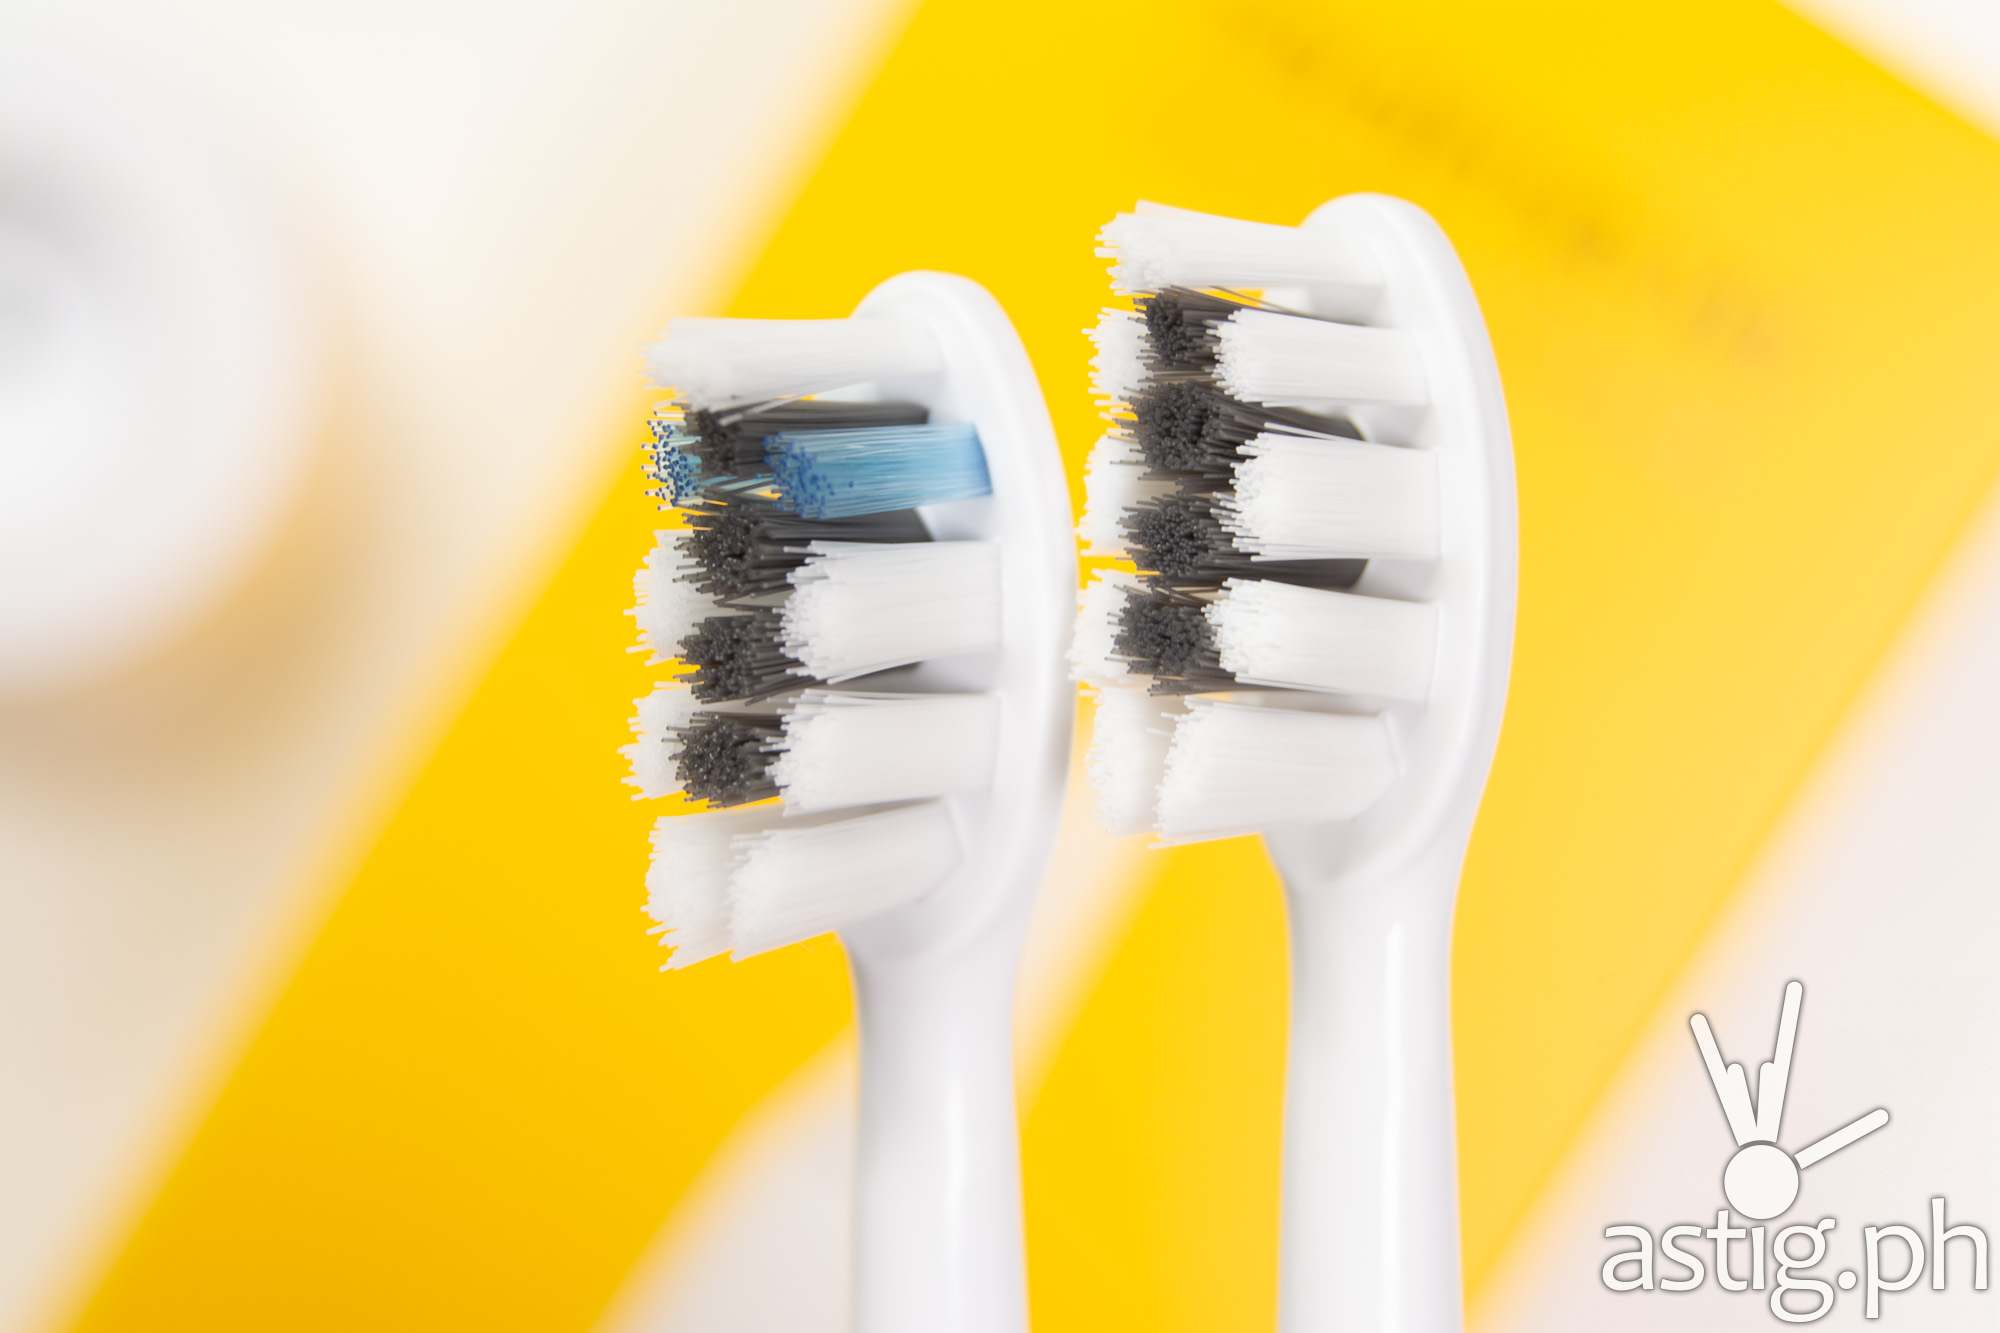 Toothbrush bristles closeup - realme M1 Sonic Electric Toothbrush (Philippines)